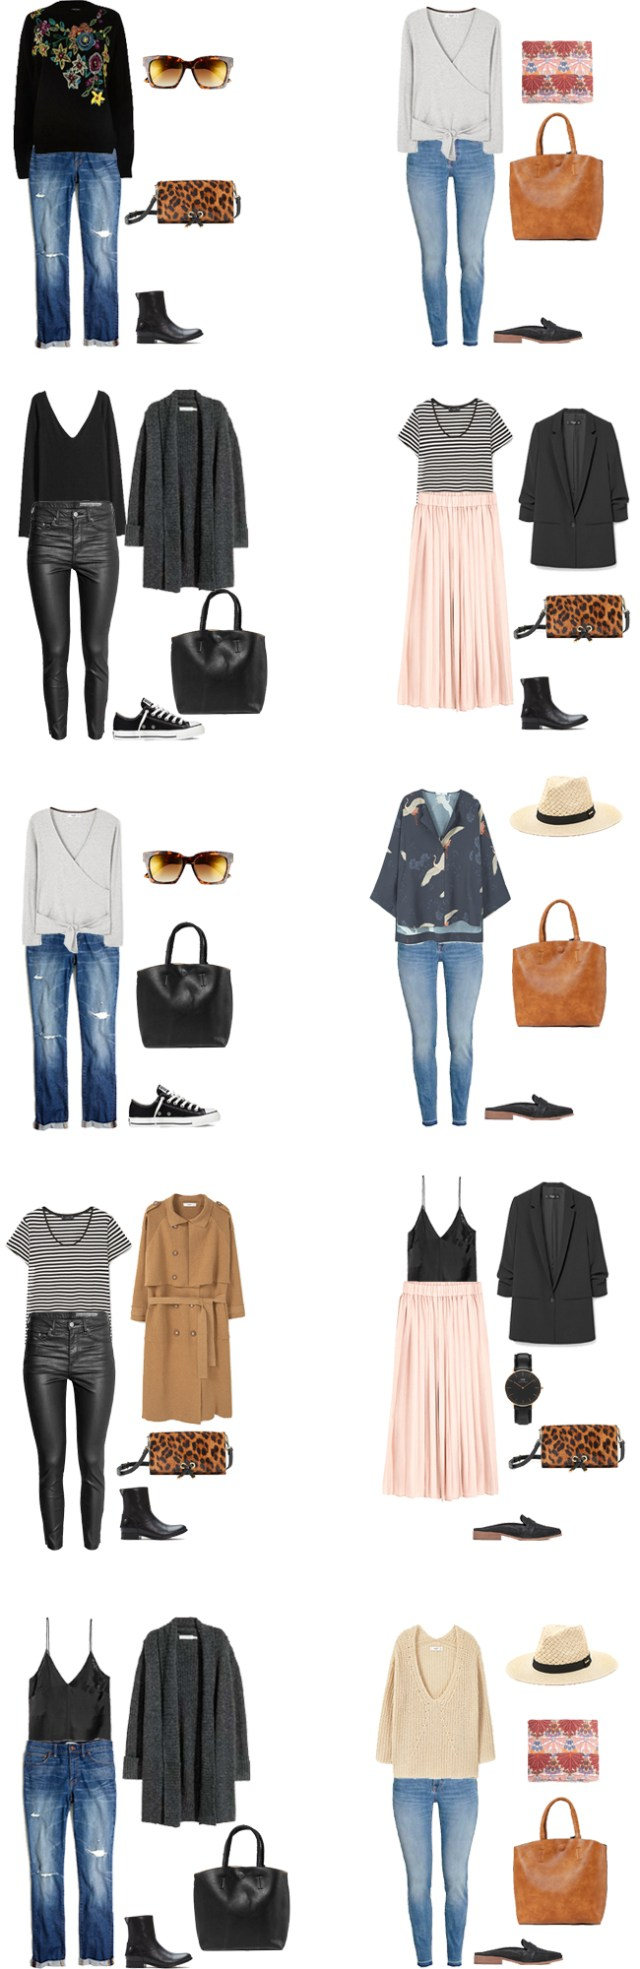 What to Wear in the Amalfi Coast Outfit Options 11-20 #travellight #packinglight #traveltips #travel #travelwardrobe #livelovesara